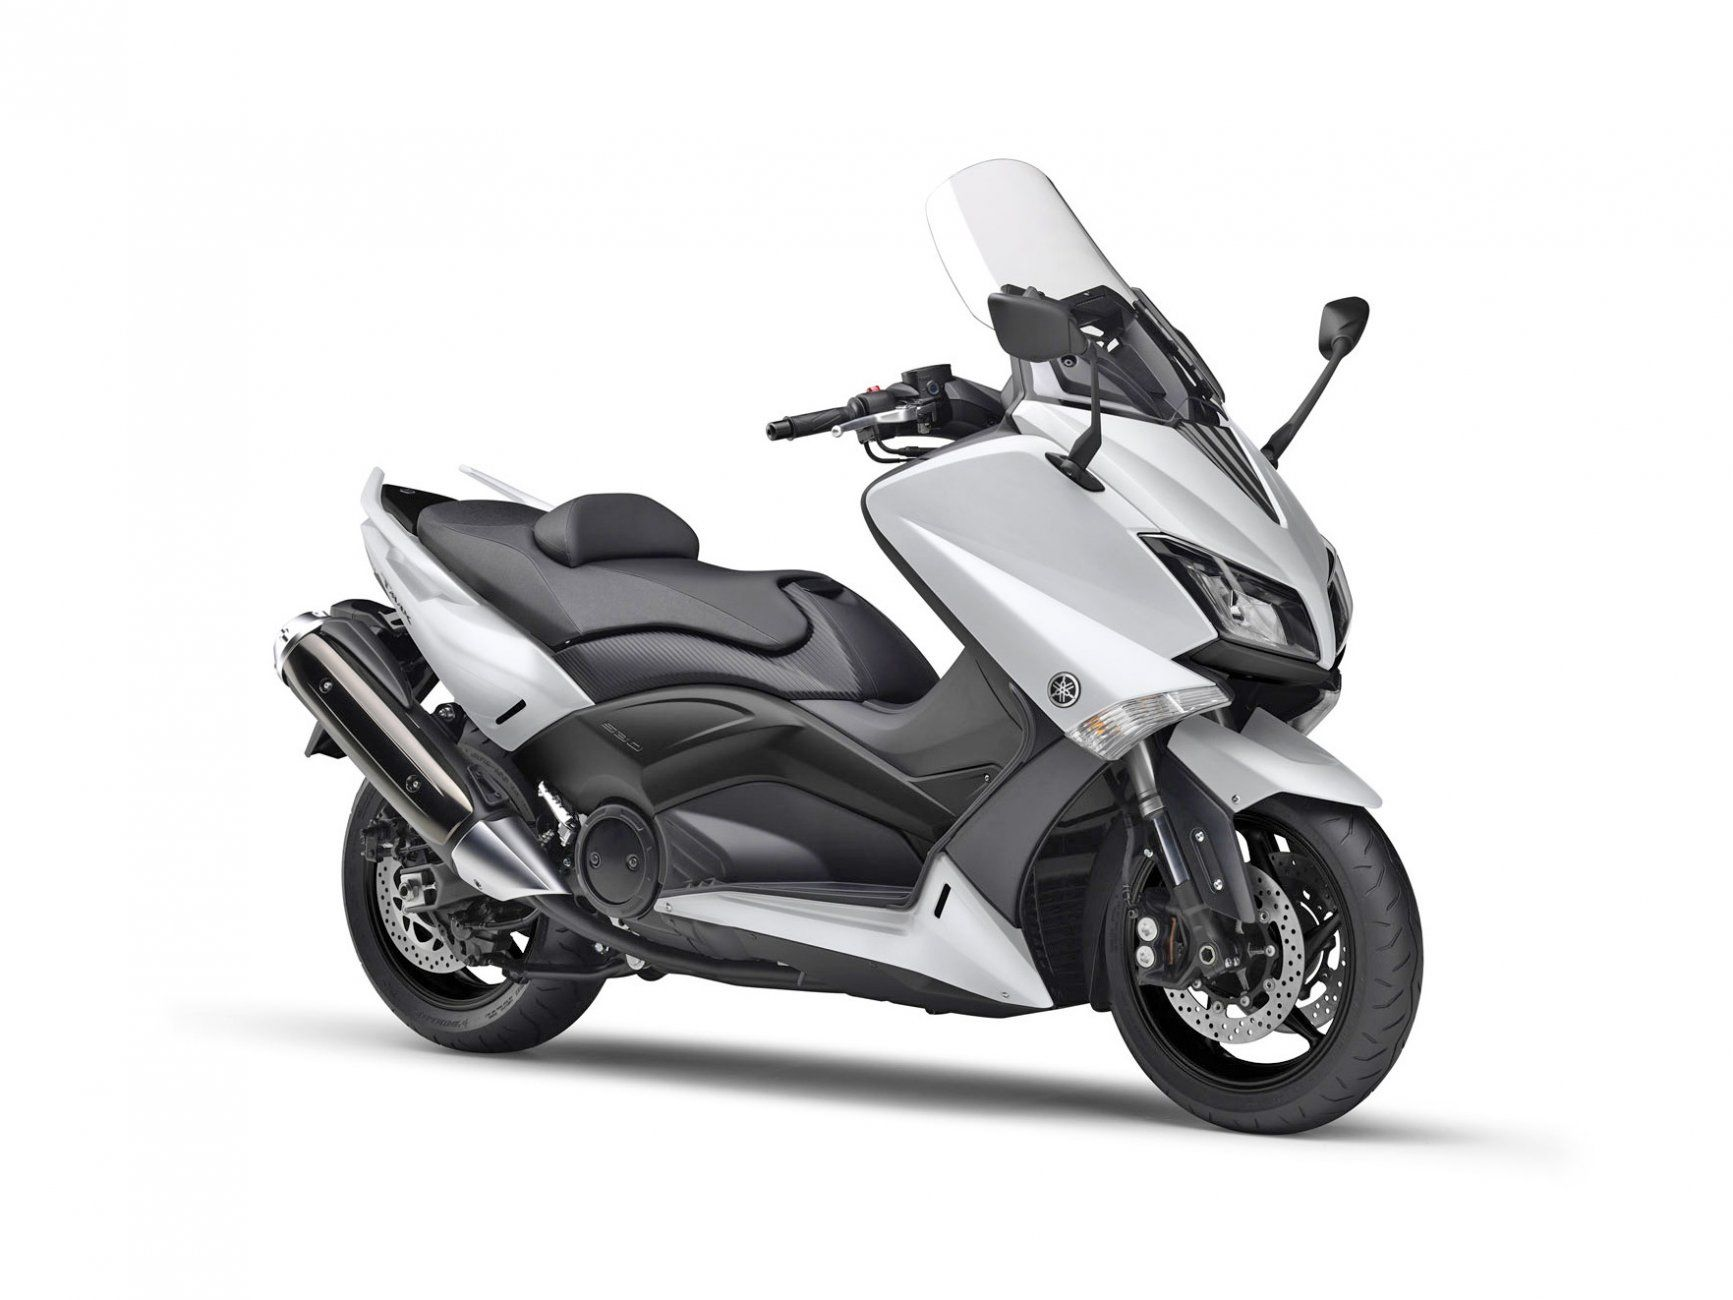 scooter dynamique yamaha 125 xmax avec abs moto scooter marseille occasion moto. Black Bedroom Furniture Sets. Home Design Ideas